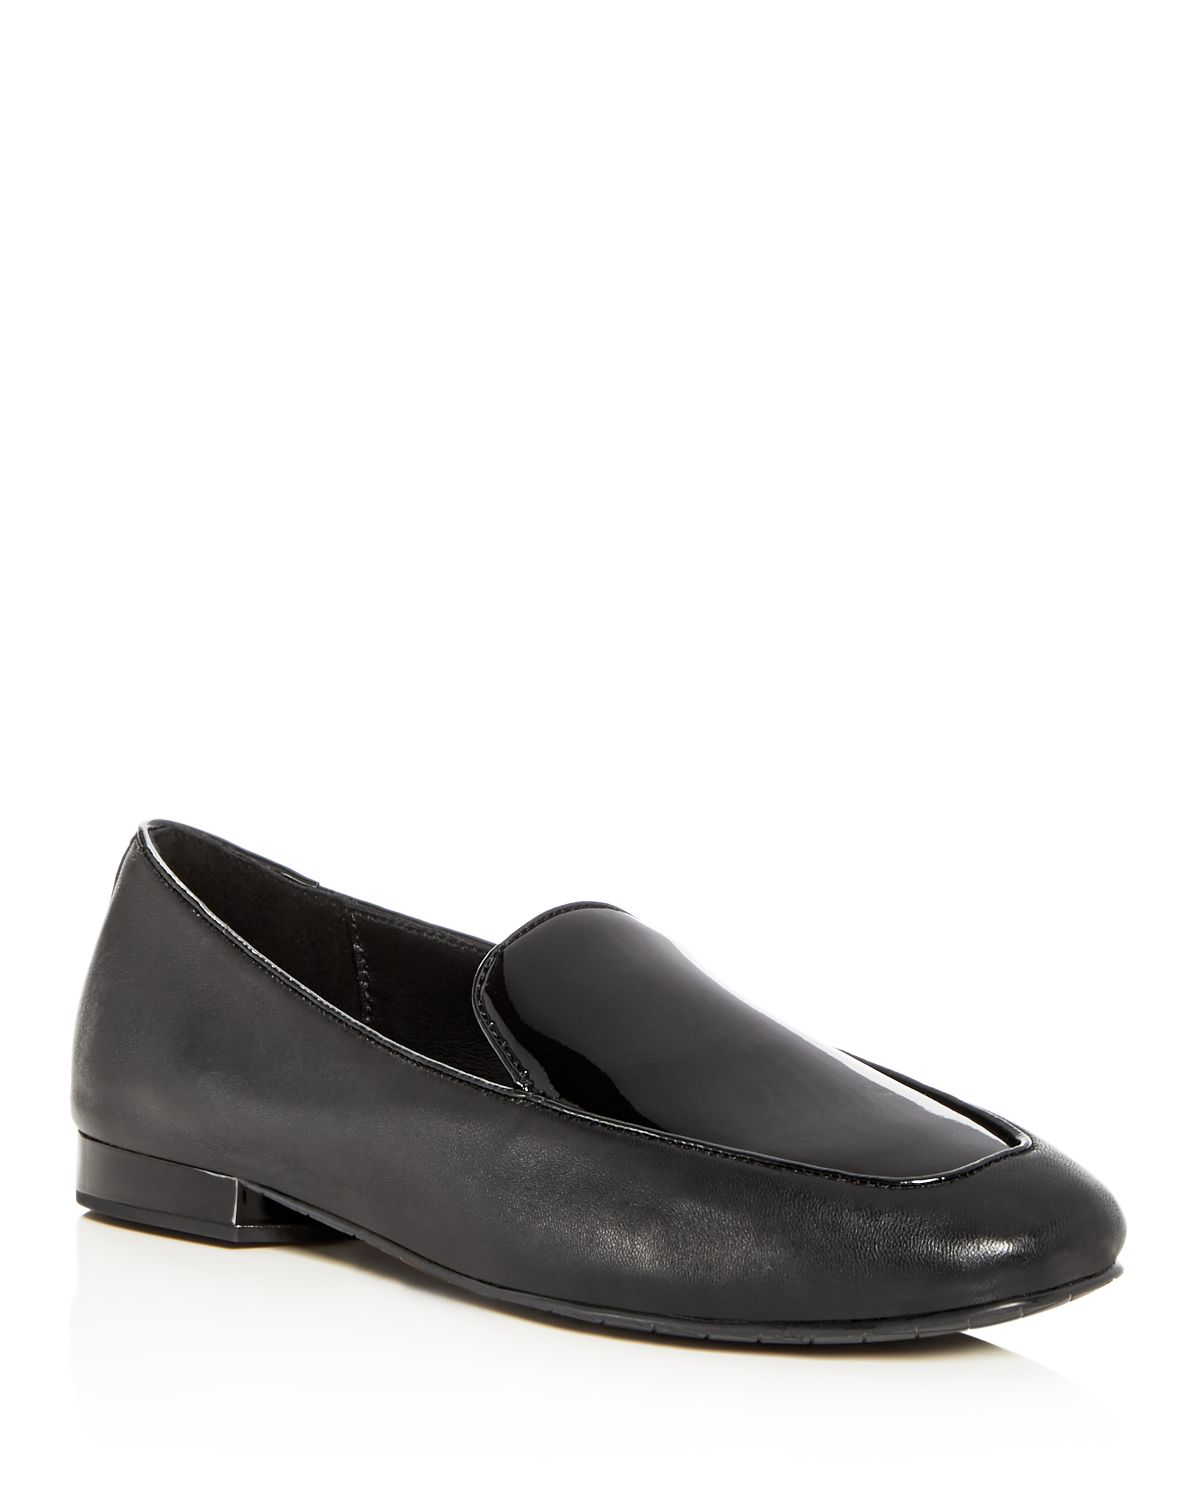 Donald Pliner Women's Honey Leather & Patent Leather Loafers